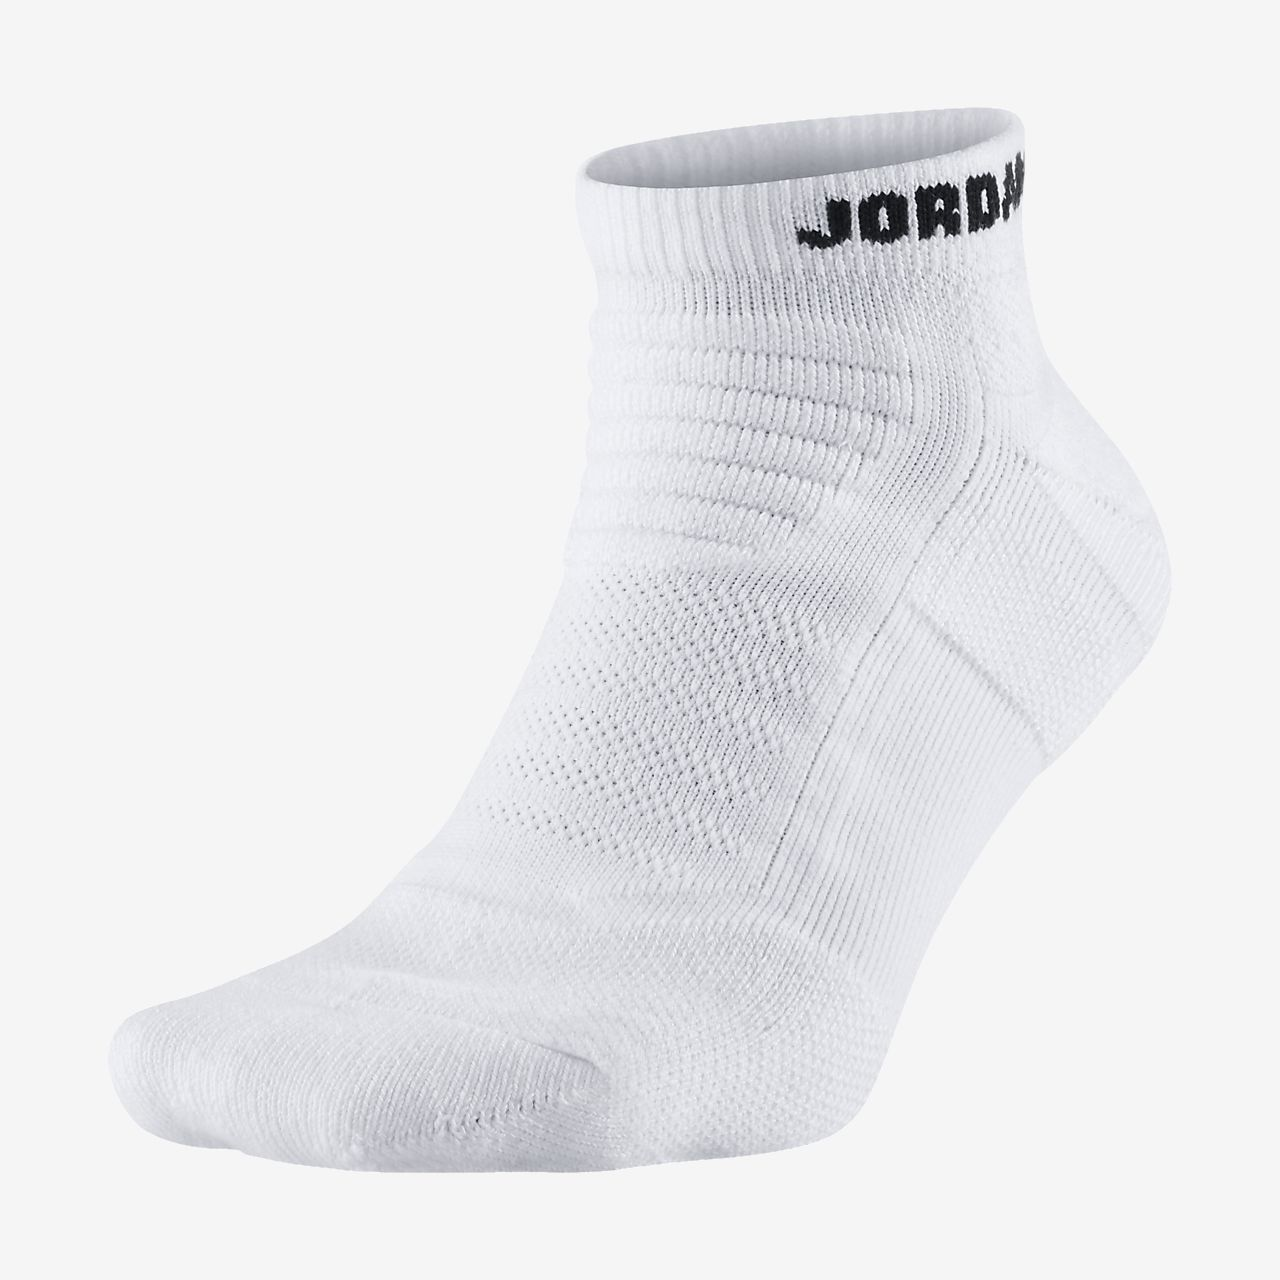 Jordan Dry Flight 2.0 Ankle Basketball Socks